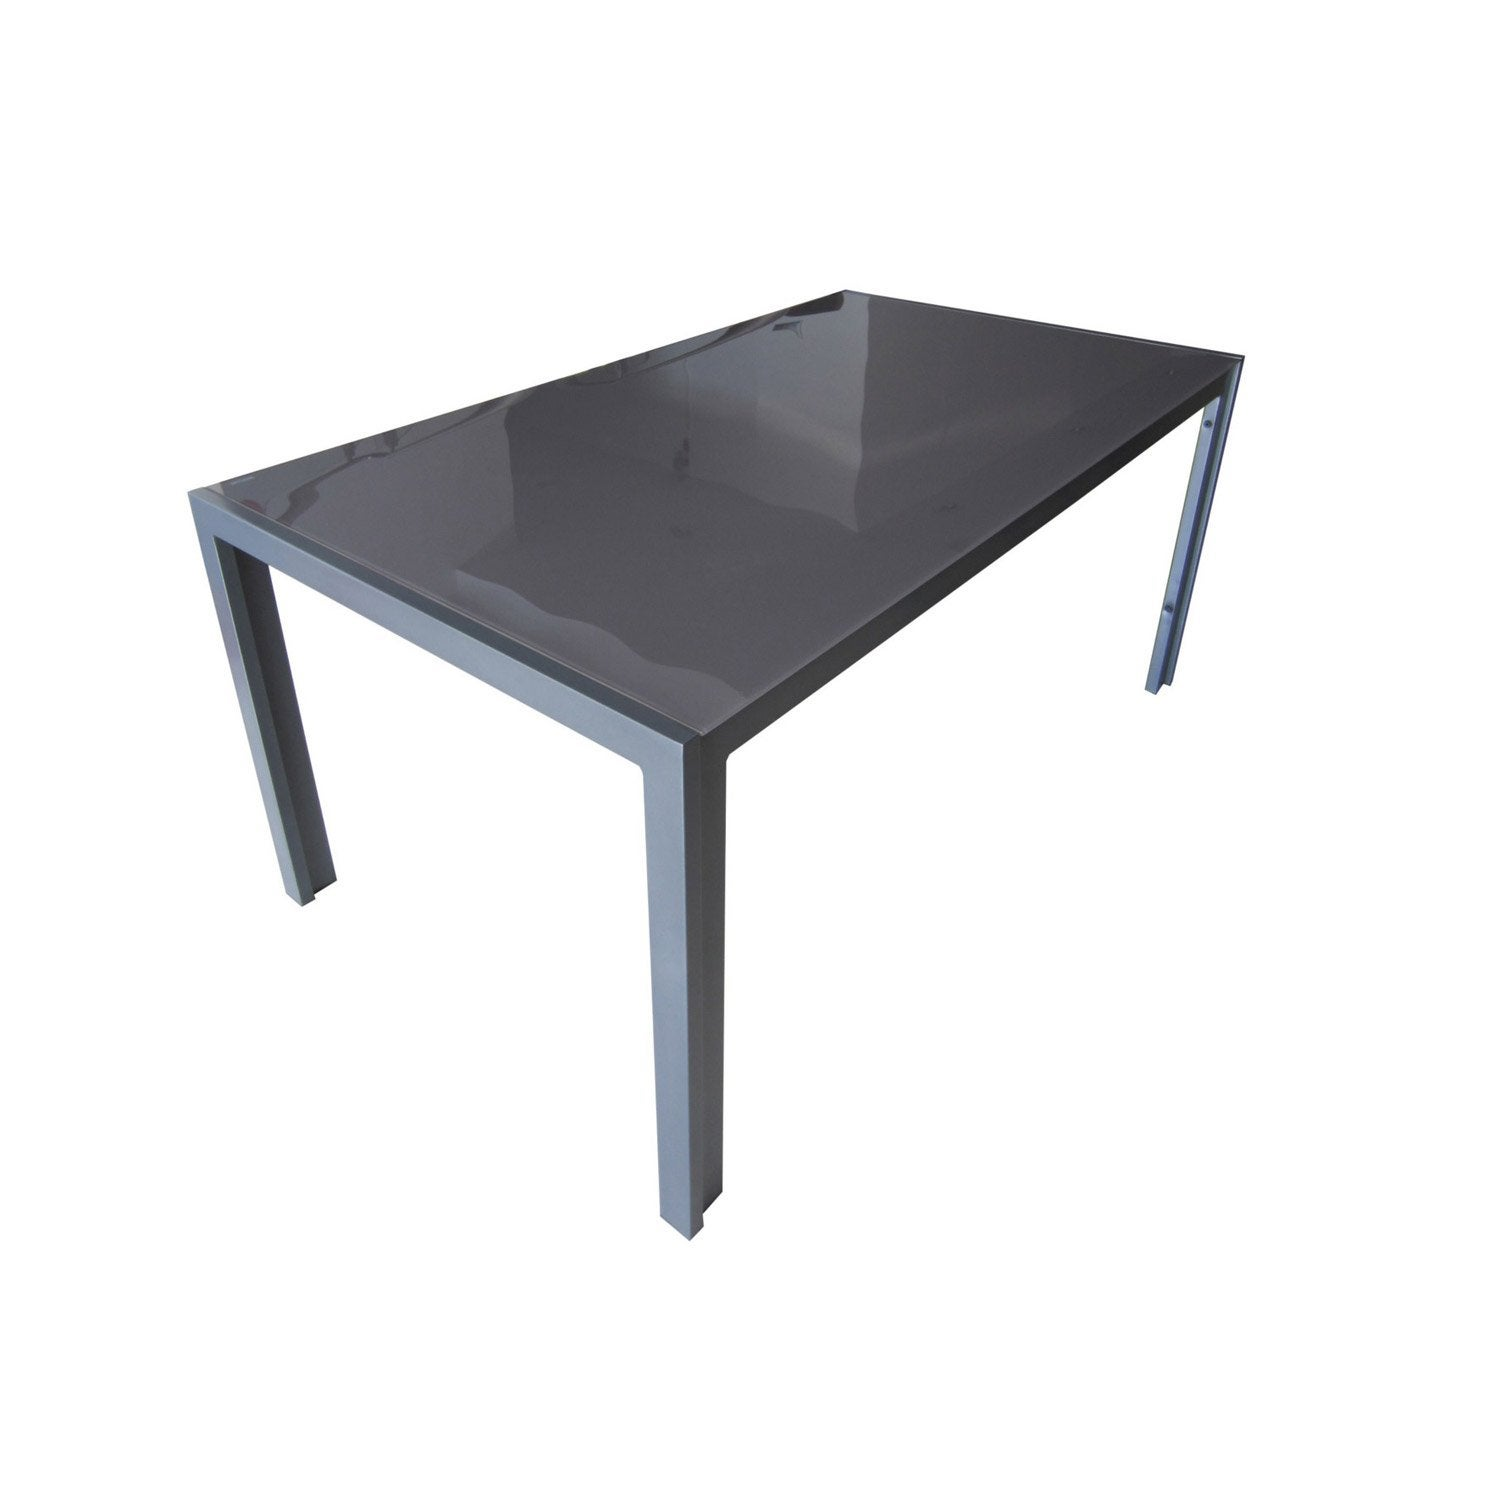 table de jardin rectangulaire grey gris 6 personnes. Black Bedroom Furniture Sets. Home Design Ideas